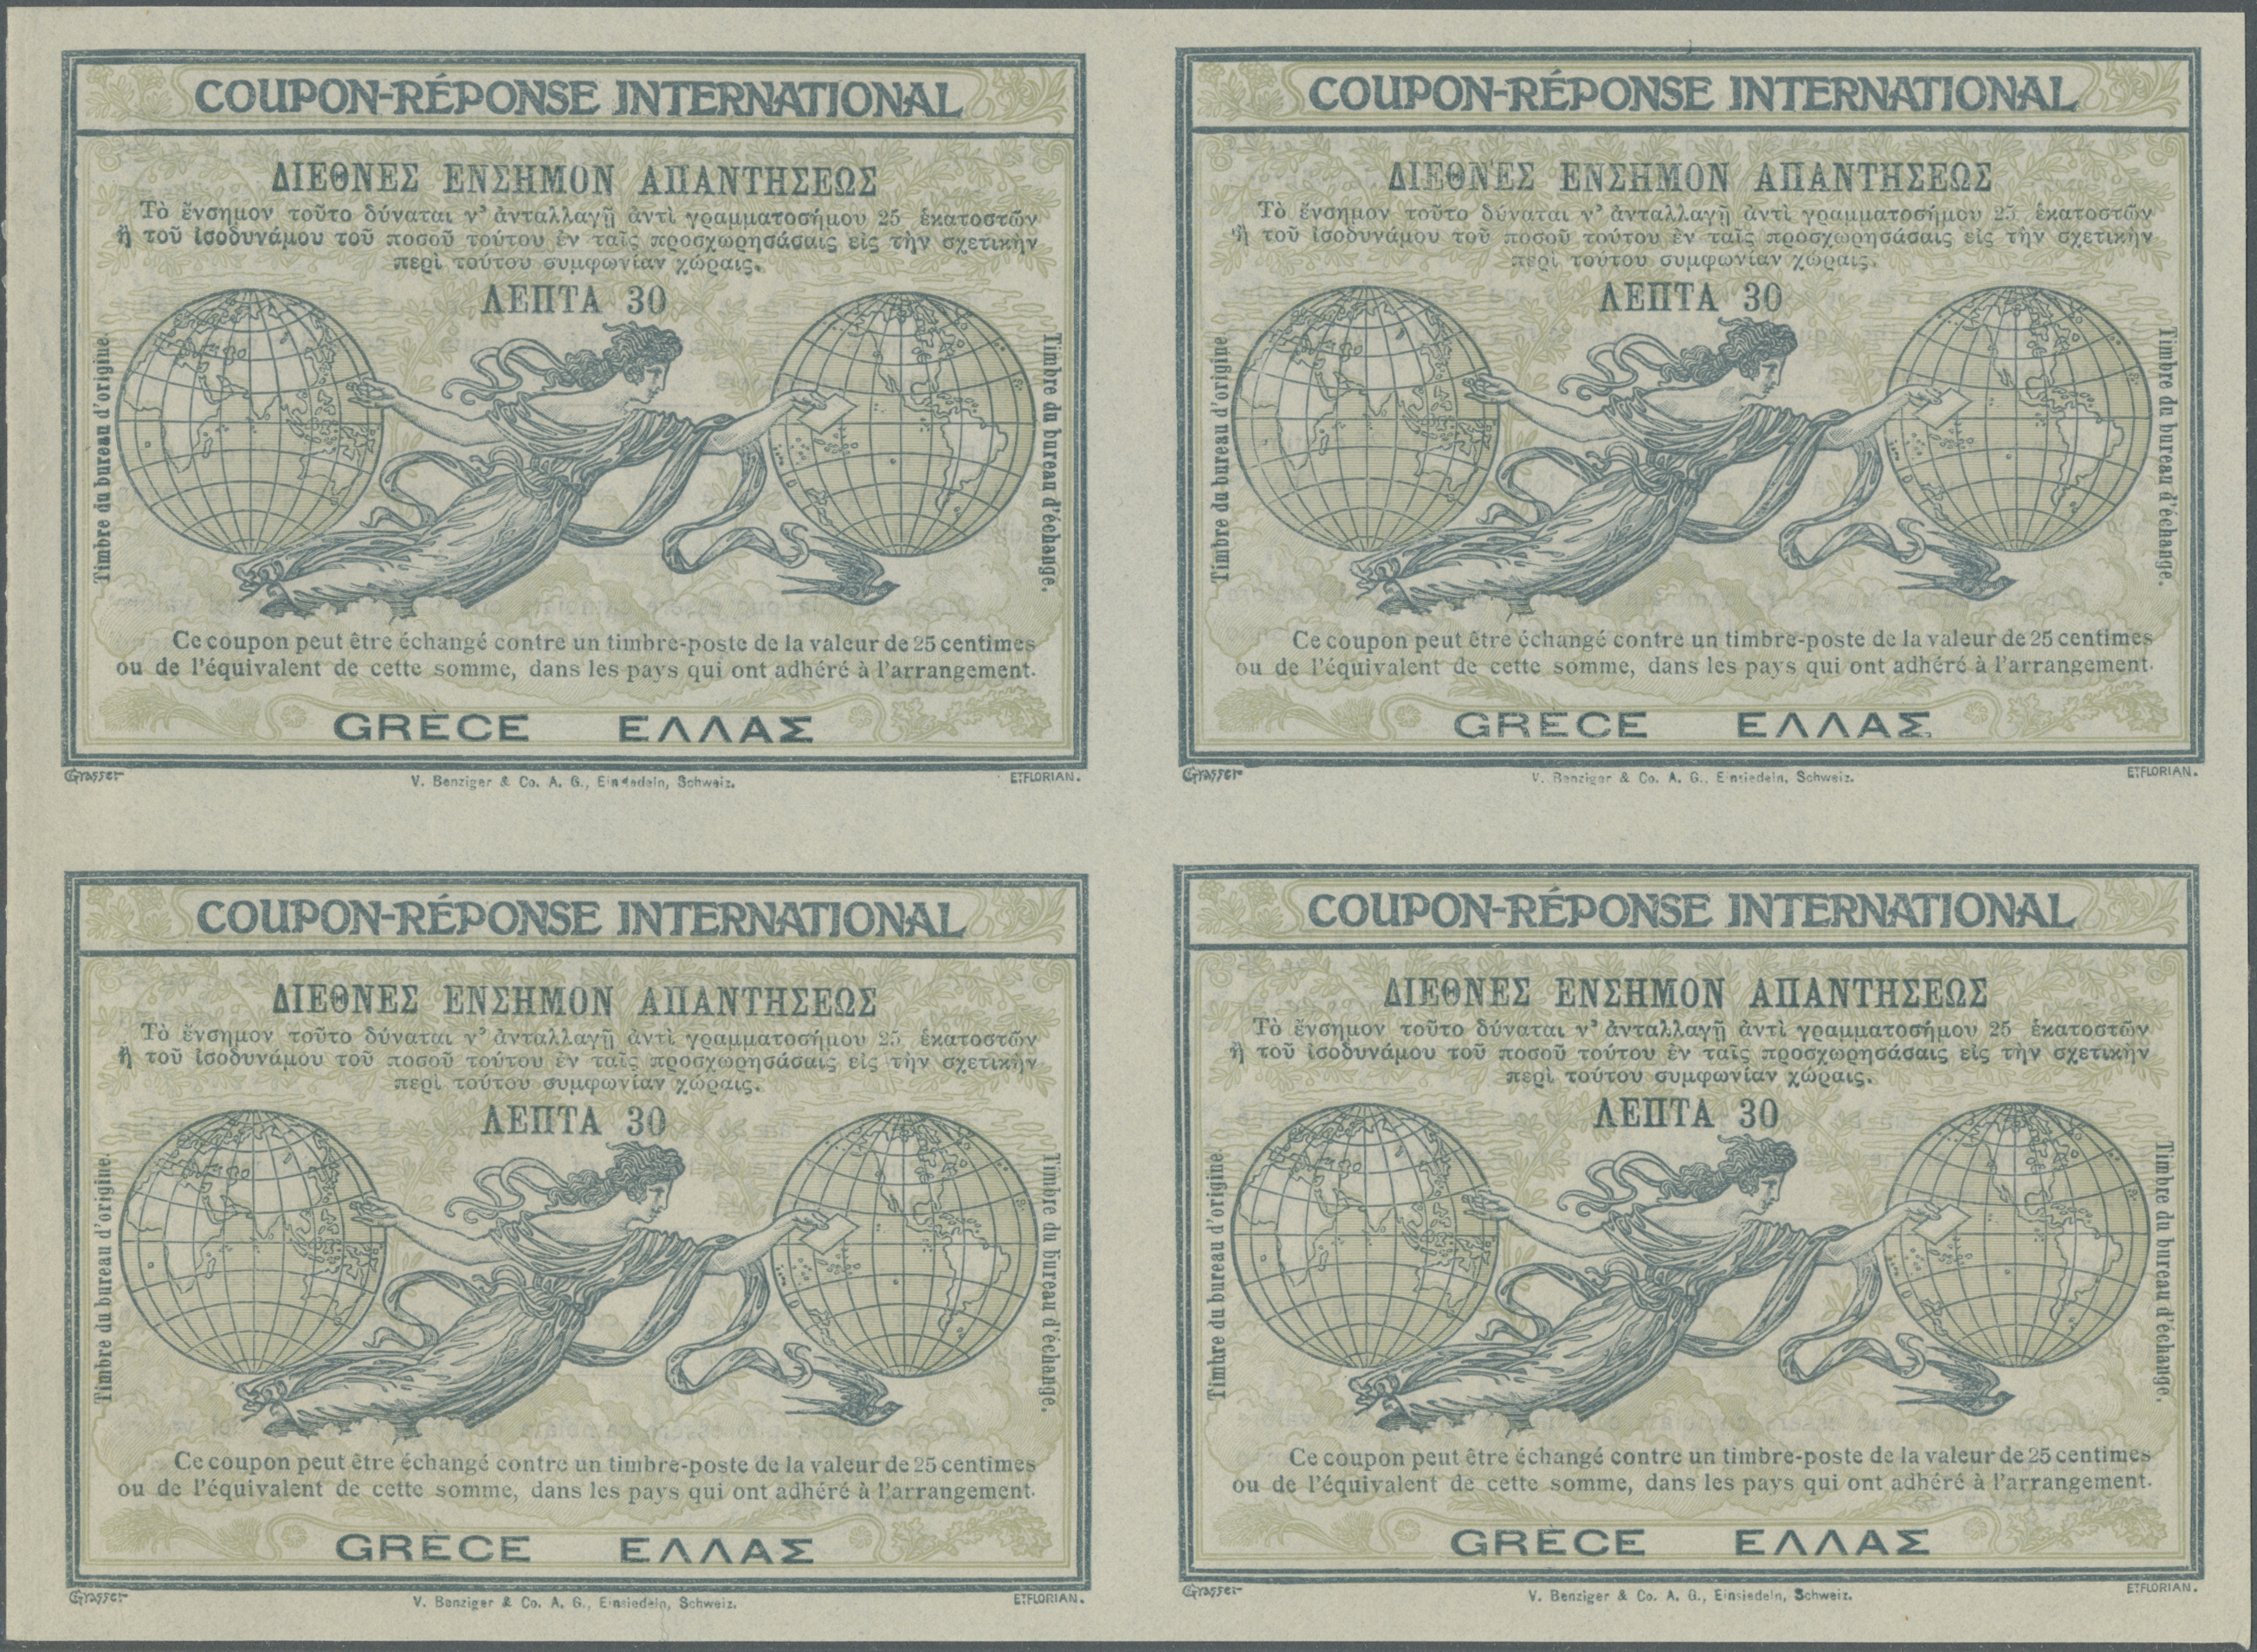 Lot 16547 - Griechenland - Ganzsachen  -  Auktionshaus Christoph Gärtner GmbH & Co. KG Single lots Philately Overseas & Europe. Auction #39 Day 4